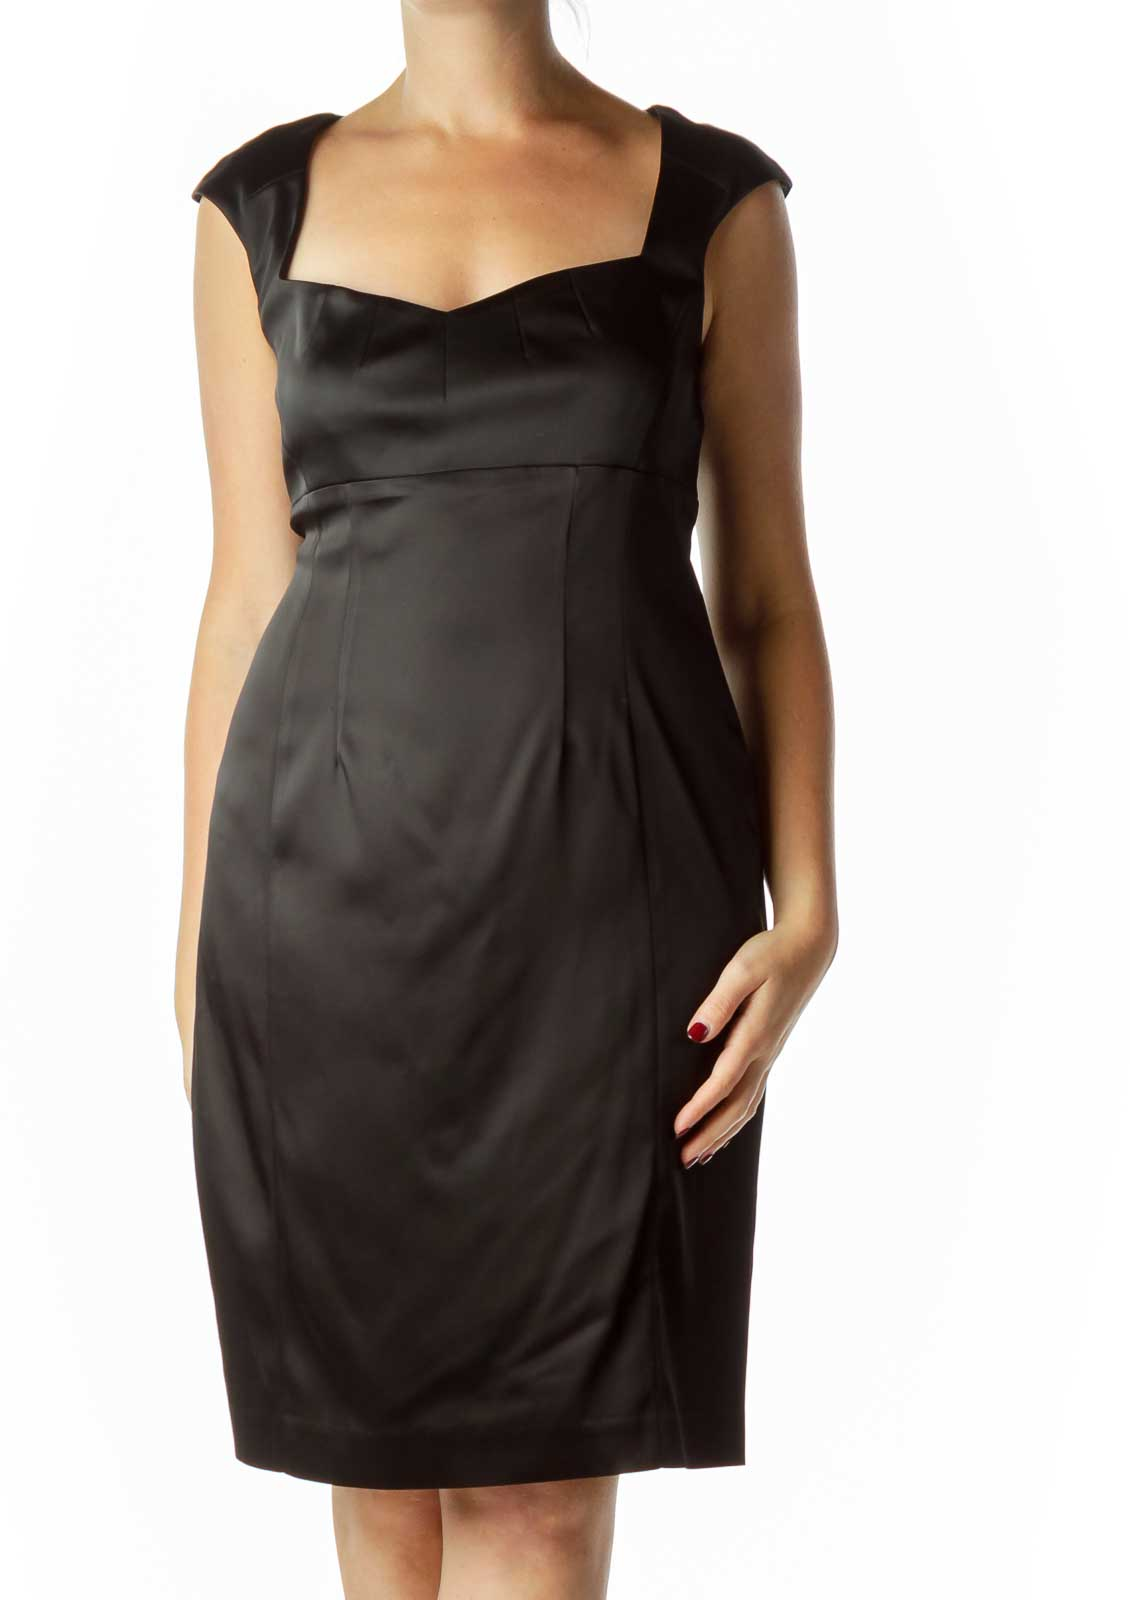 Black Satin Empire Waist Cocktail Dress